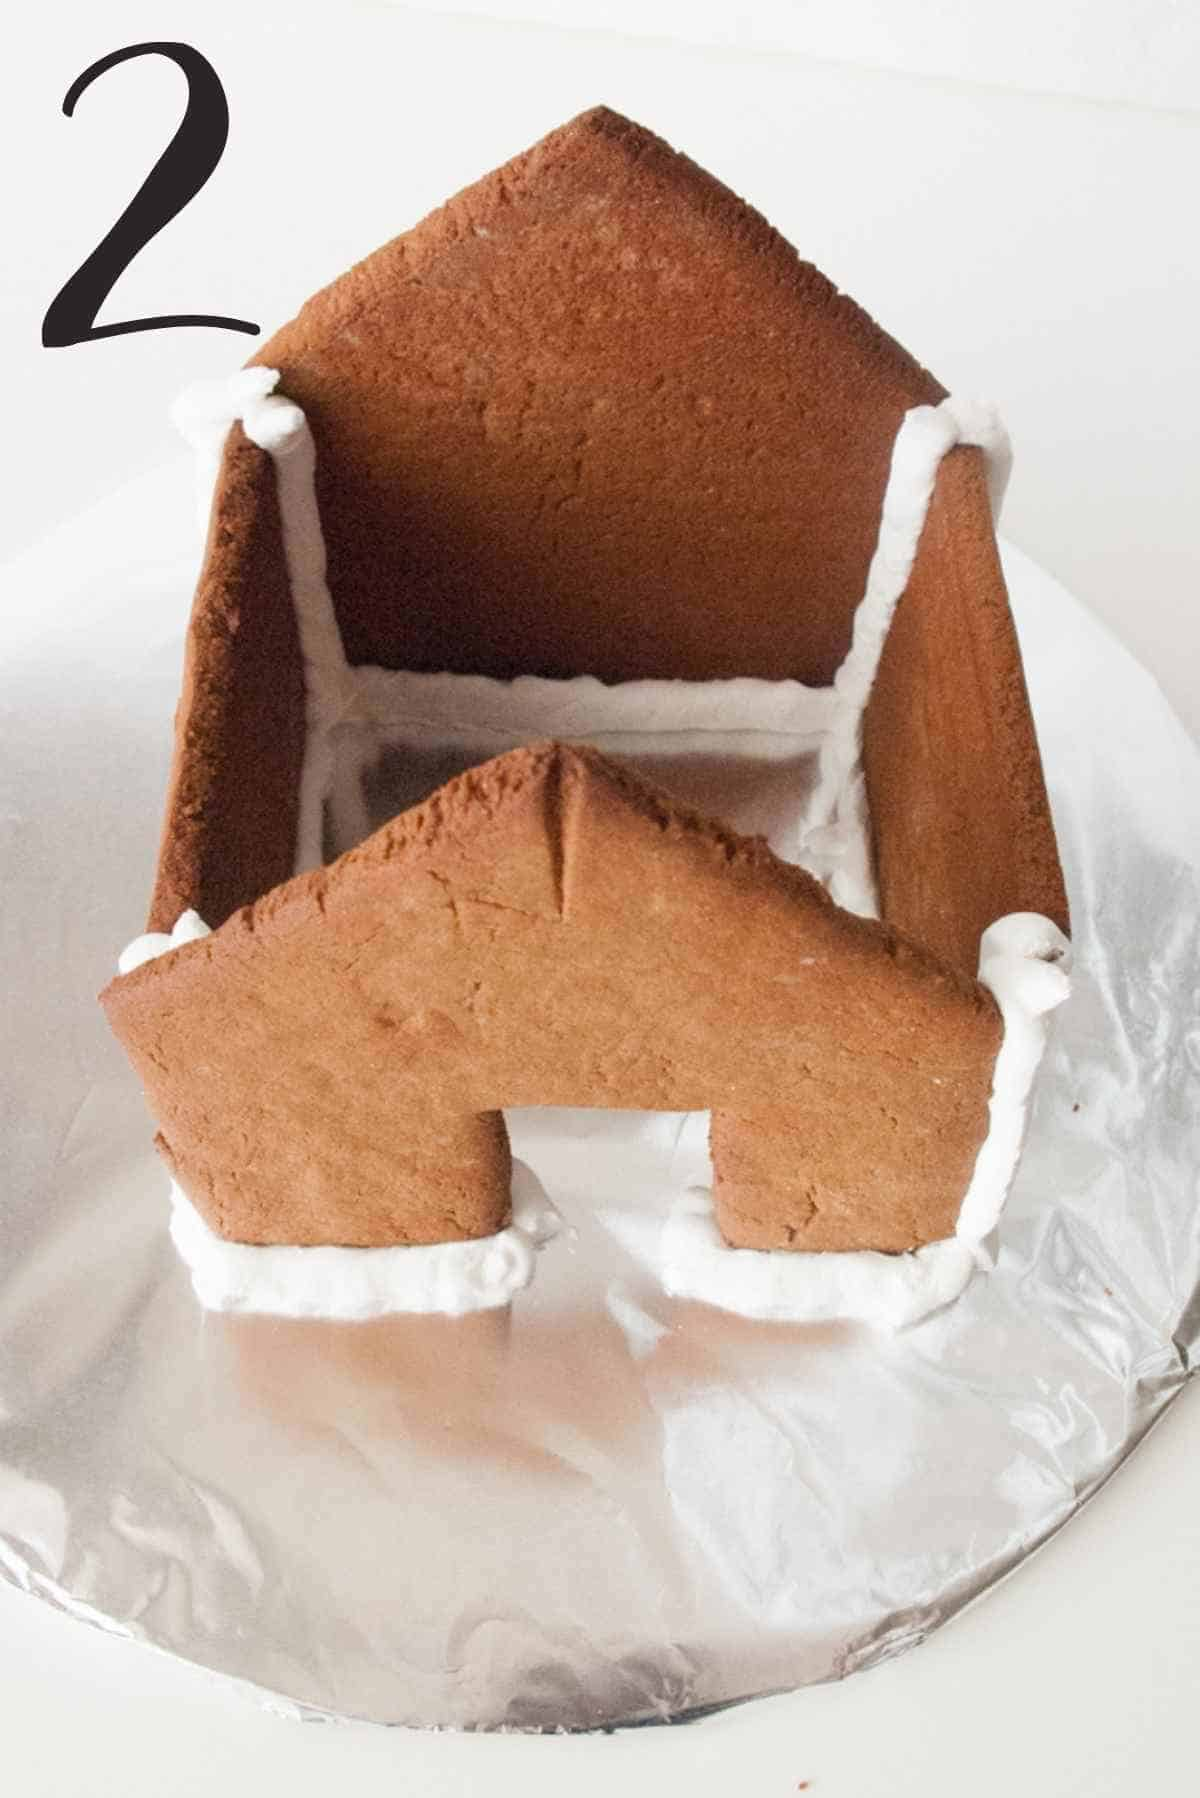 all four walls held together by royal icing.